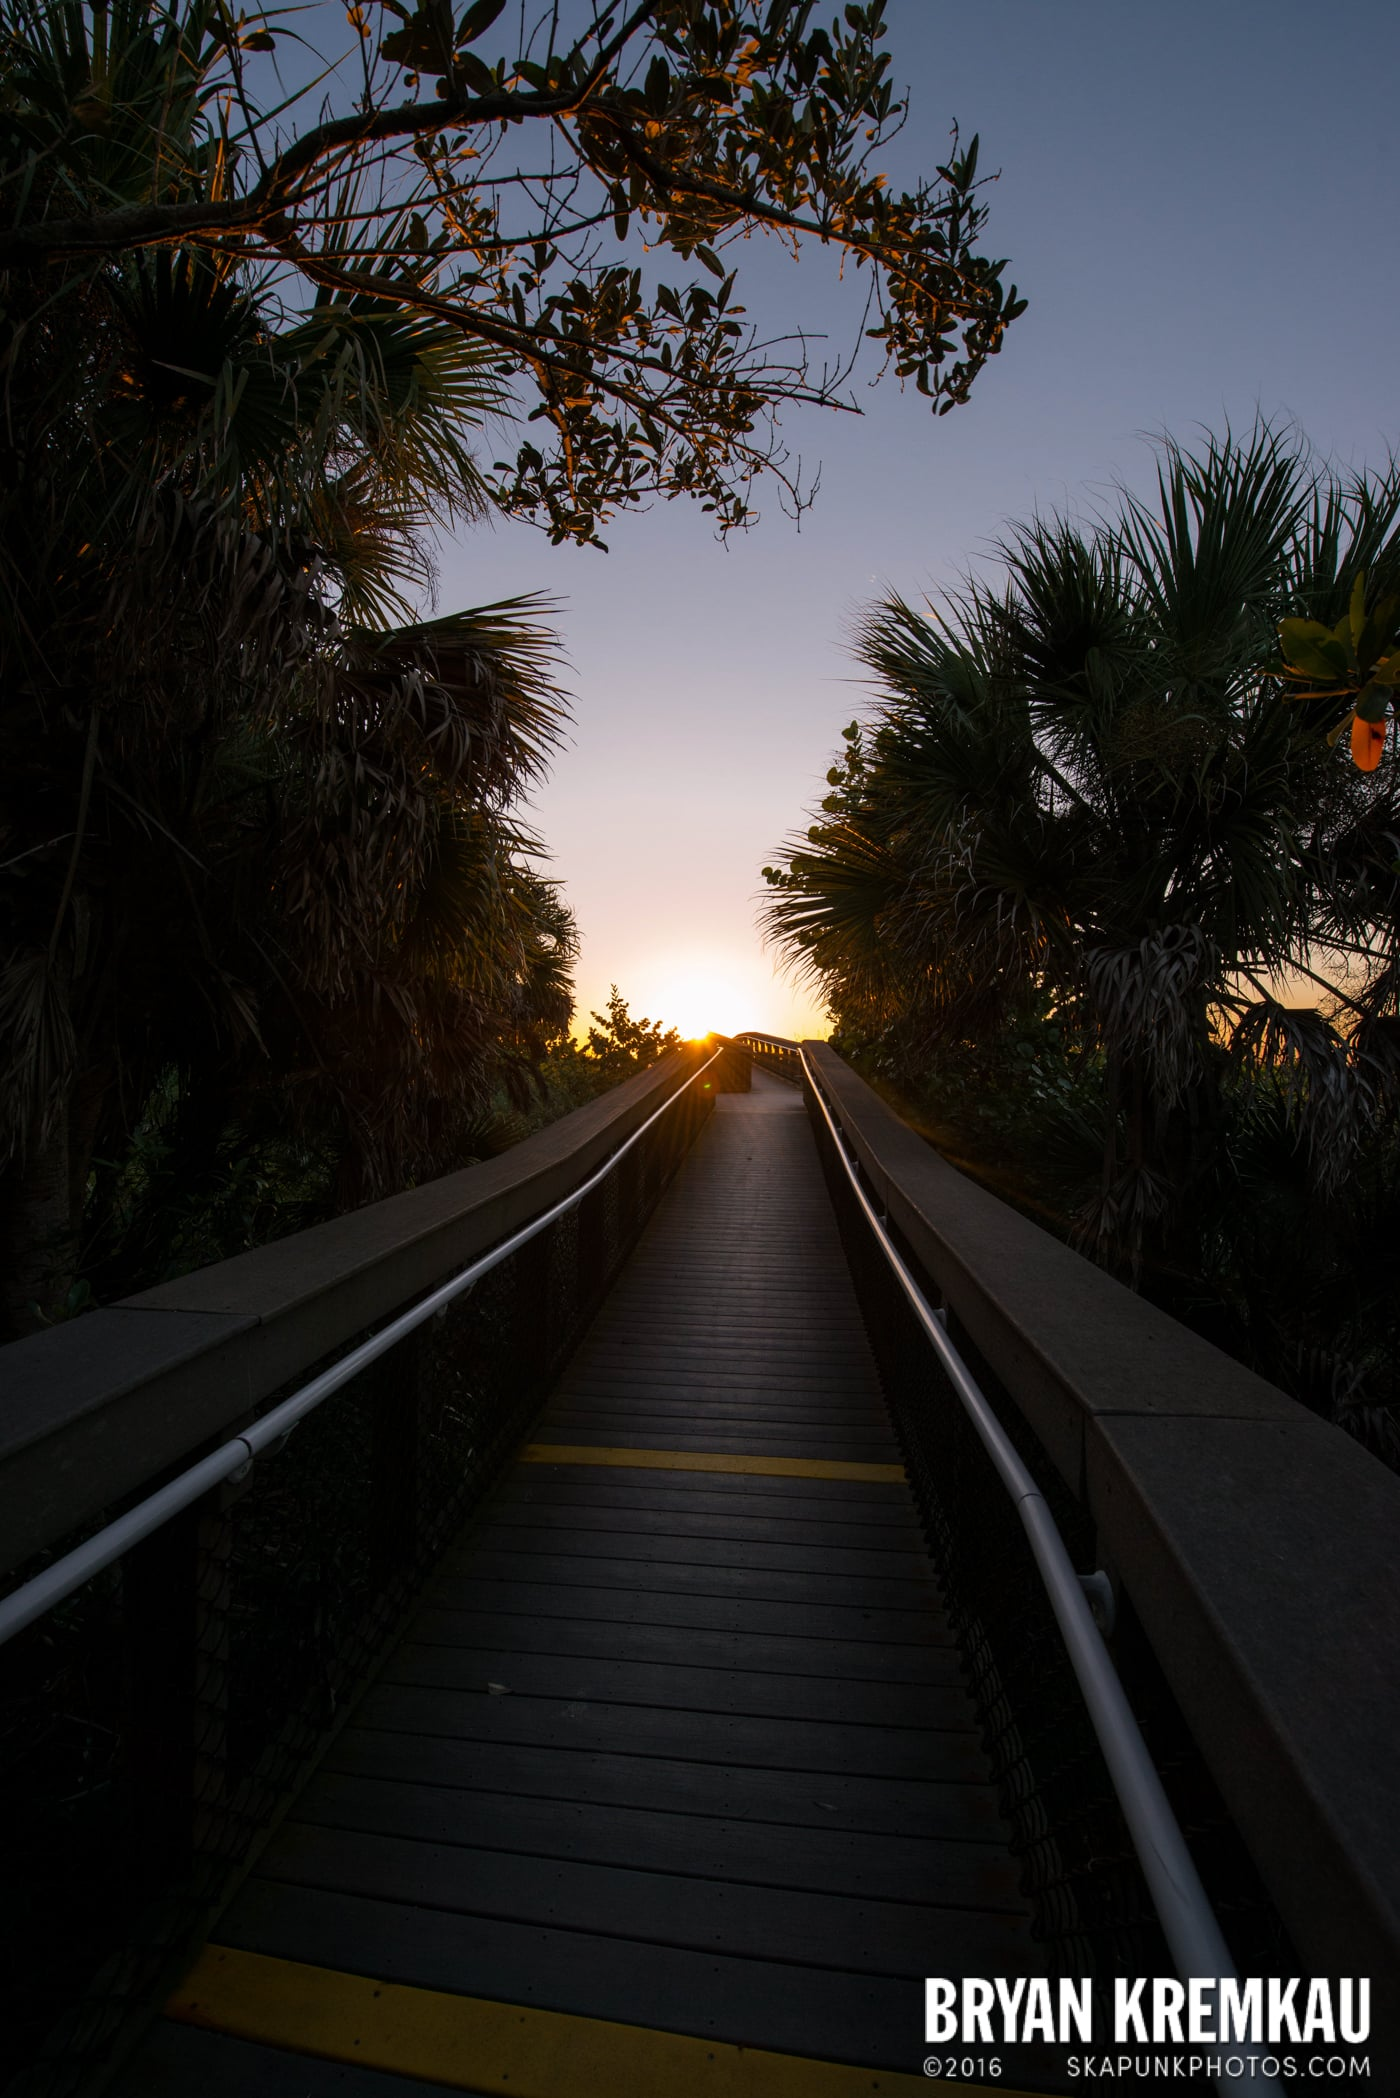 Sunsets, Astrophotography & Birds @ Venice, Florida - 10.25.14 - 11.5.14 (103)